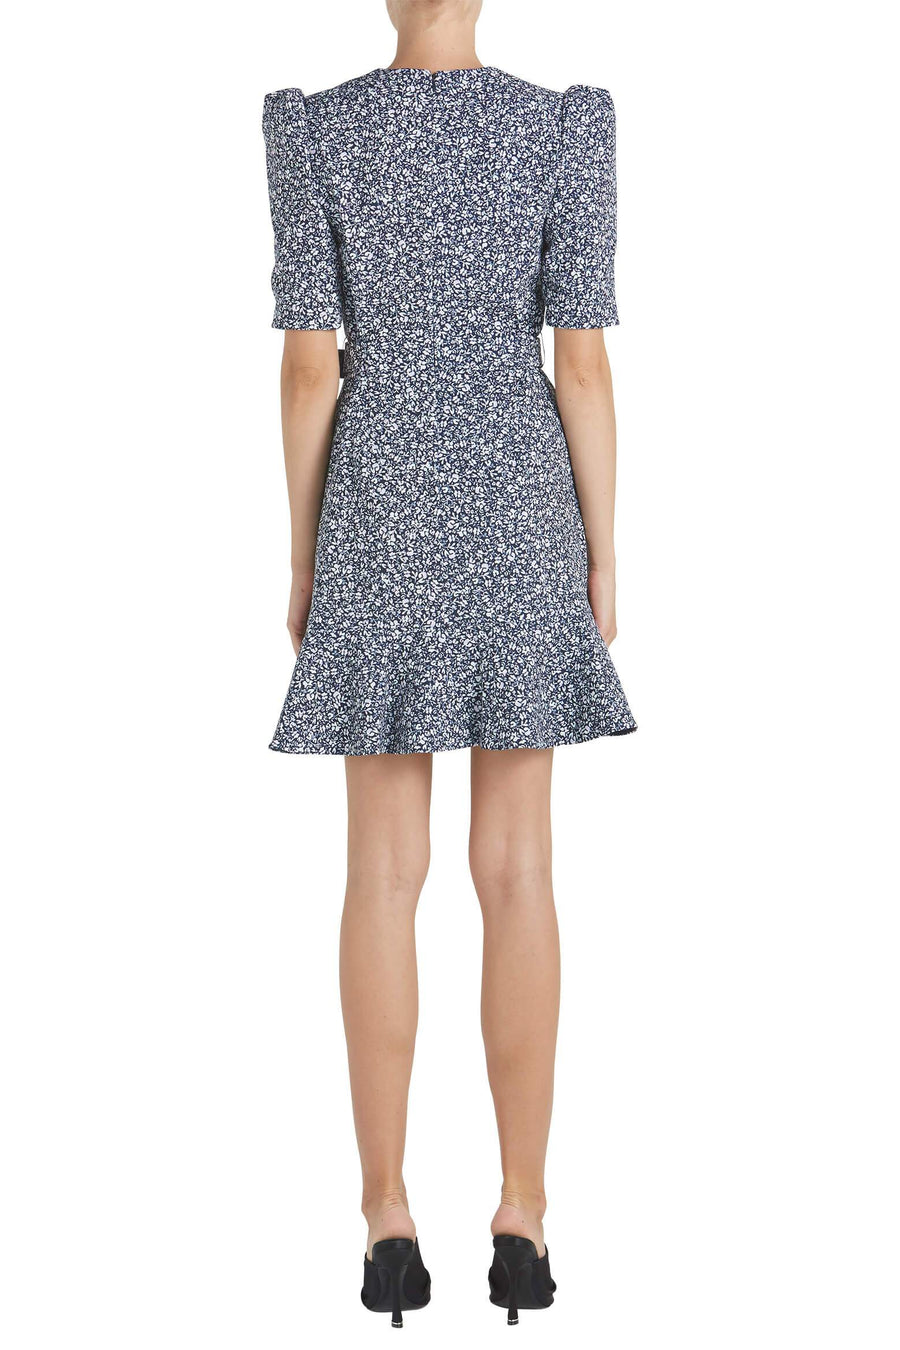 Jonathan Simkhai Evelyn Floral Crepe Dress in Midnight from The New Trend